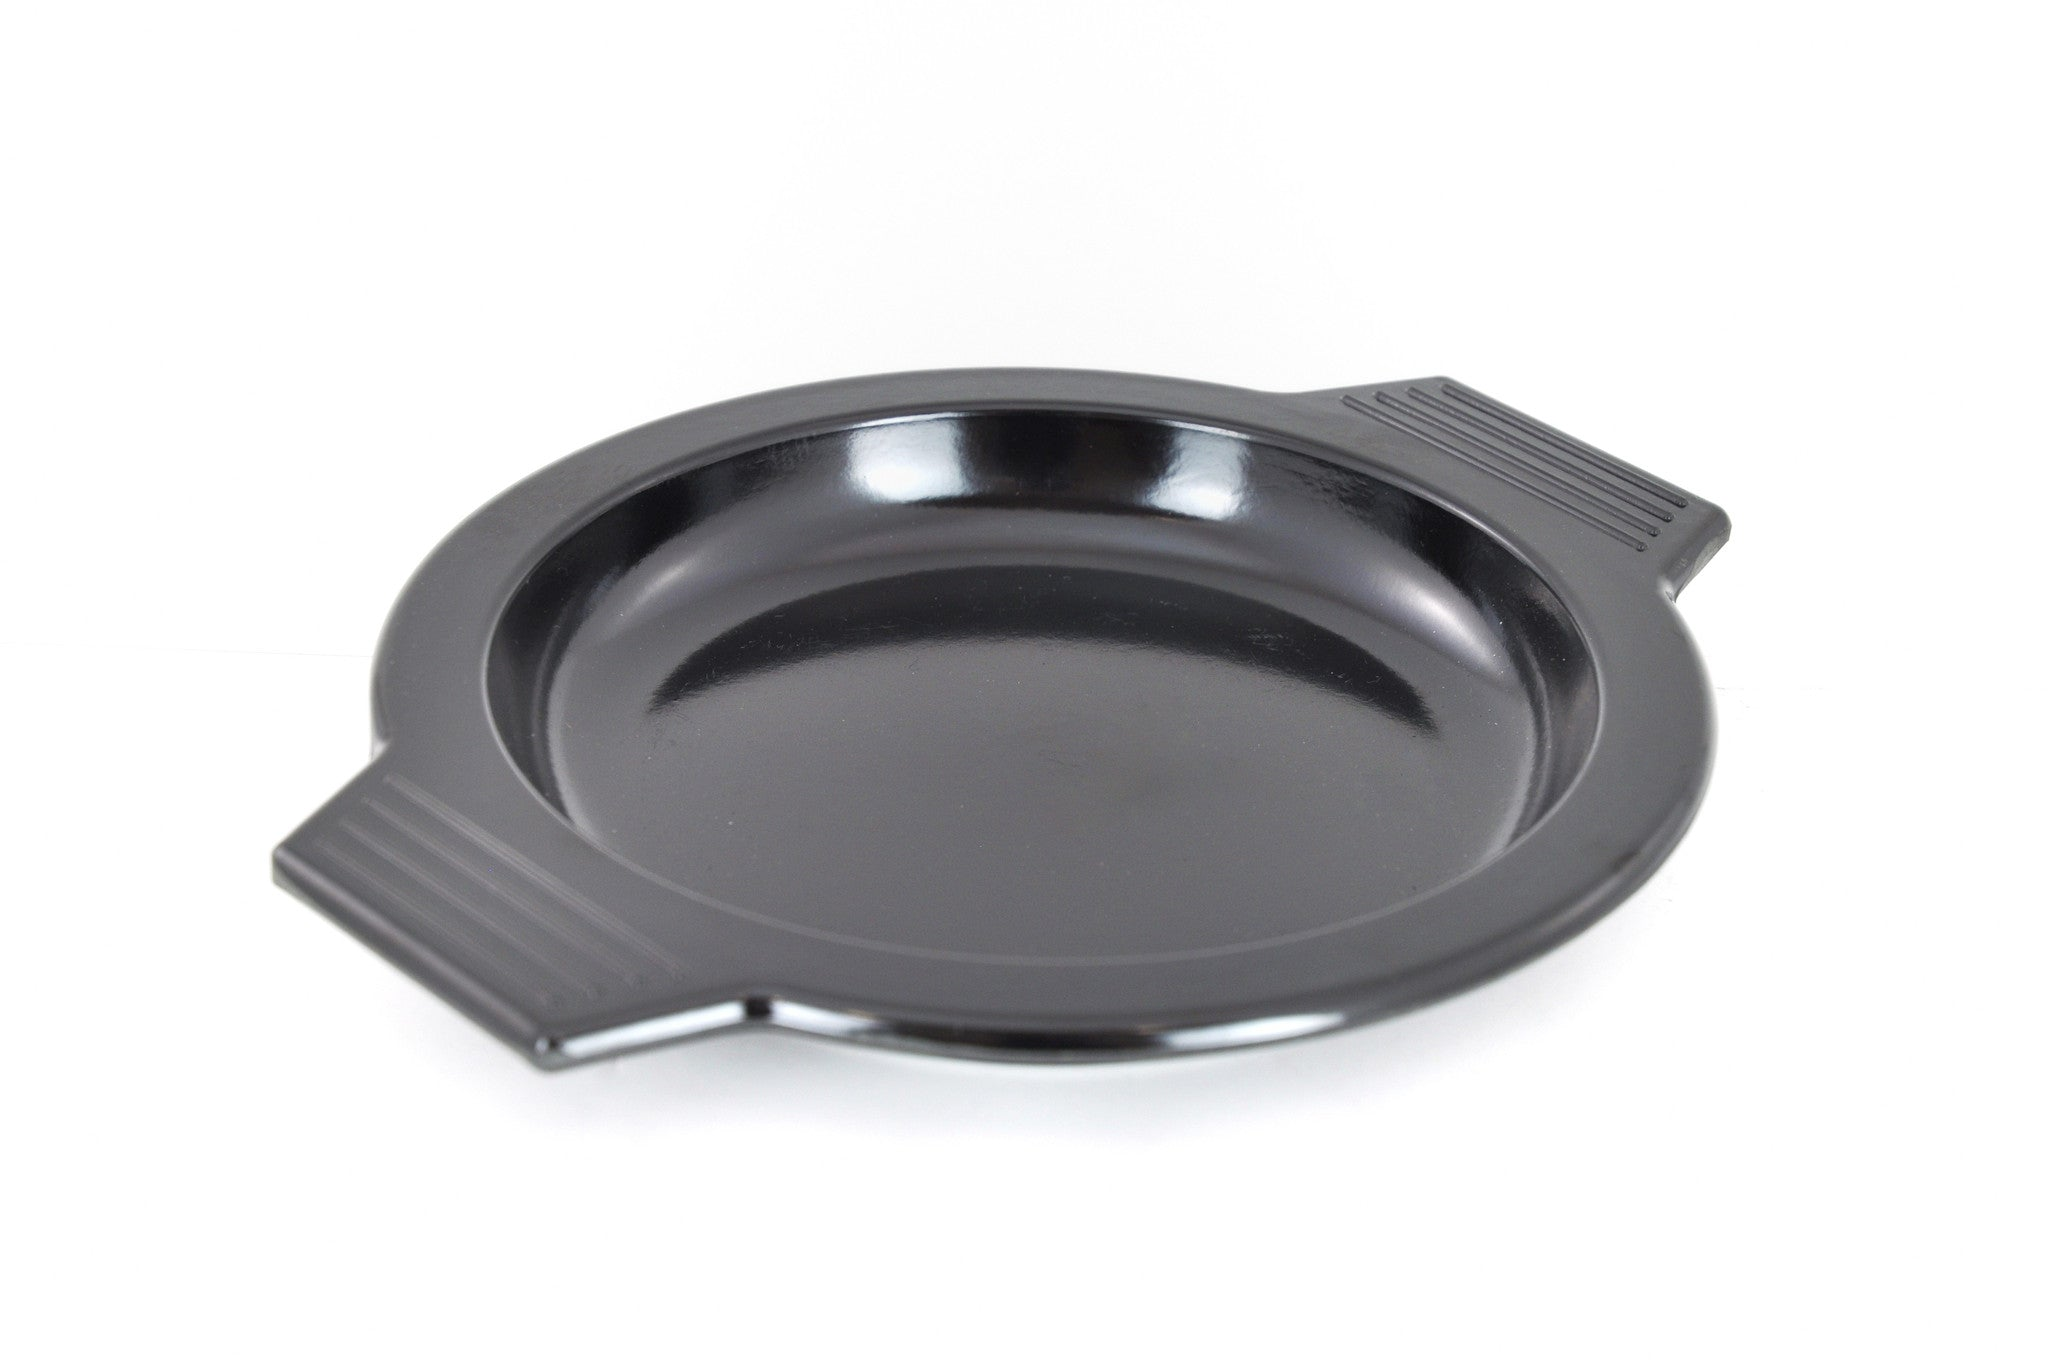 Melamine Black Bases for Korean Stone & Clay Pots, Melamine - eKitchenary